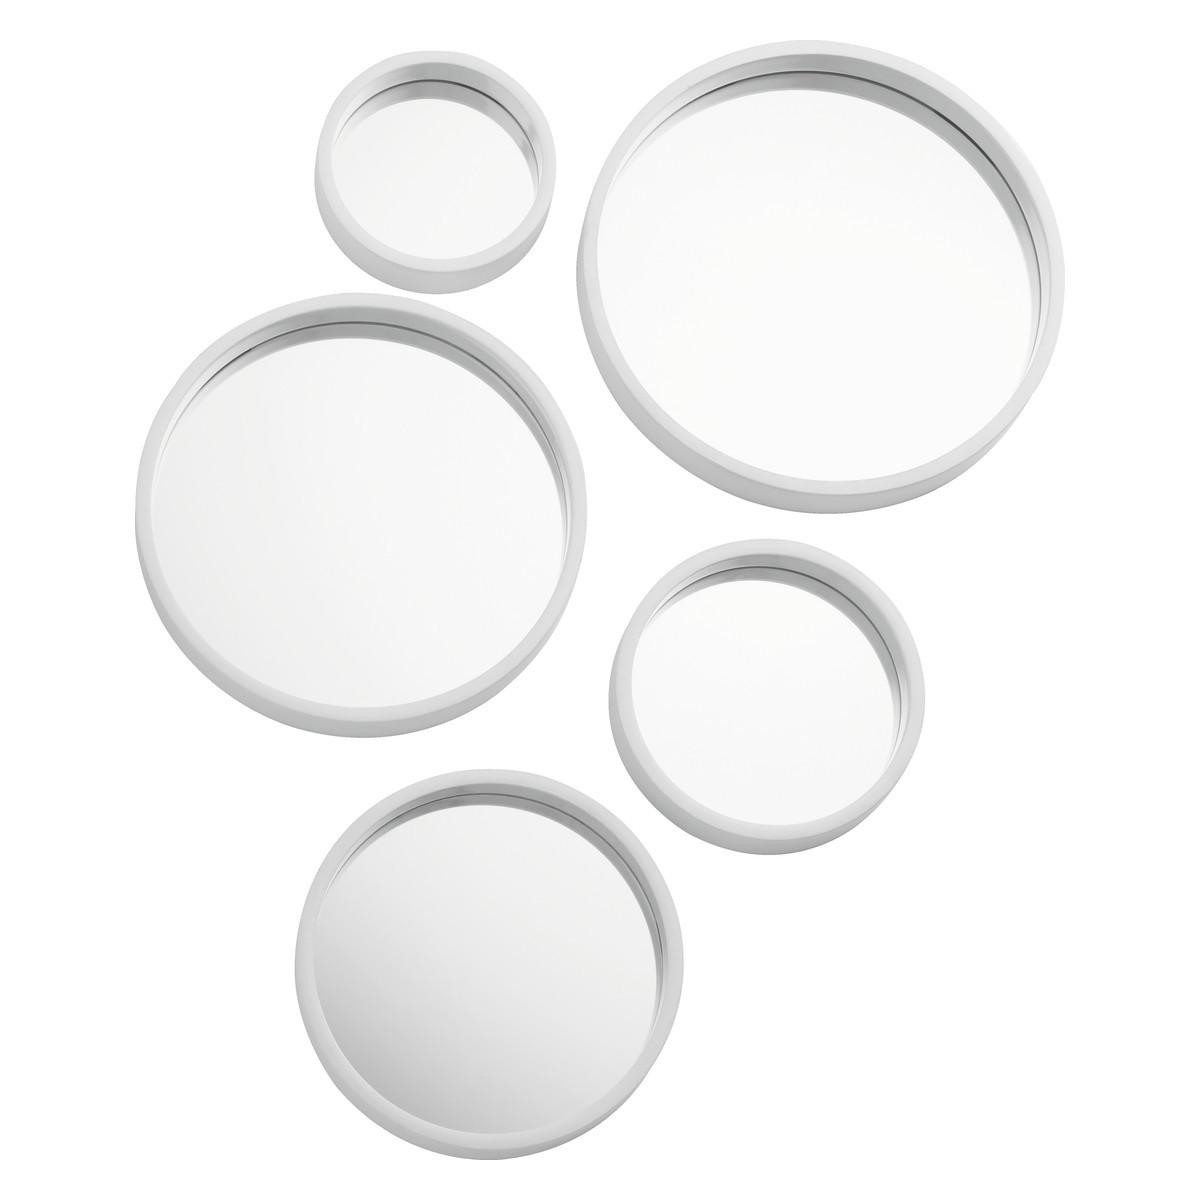 Mirror Mirror Set Of 5 White Round Mirrors | Buy Now At Habitat Uk Throughout Round White Mirror (Image 10 of 20)